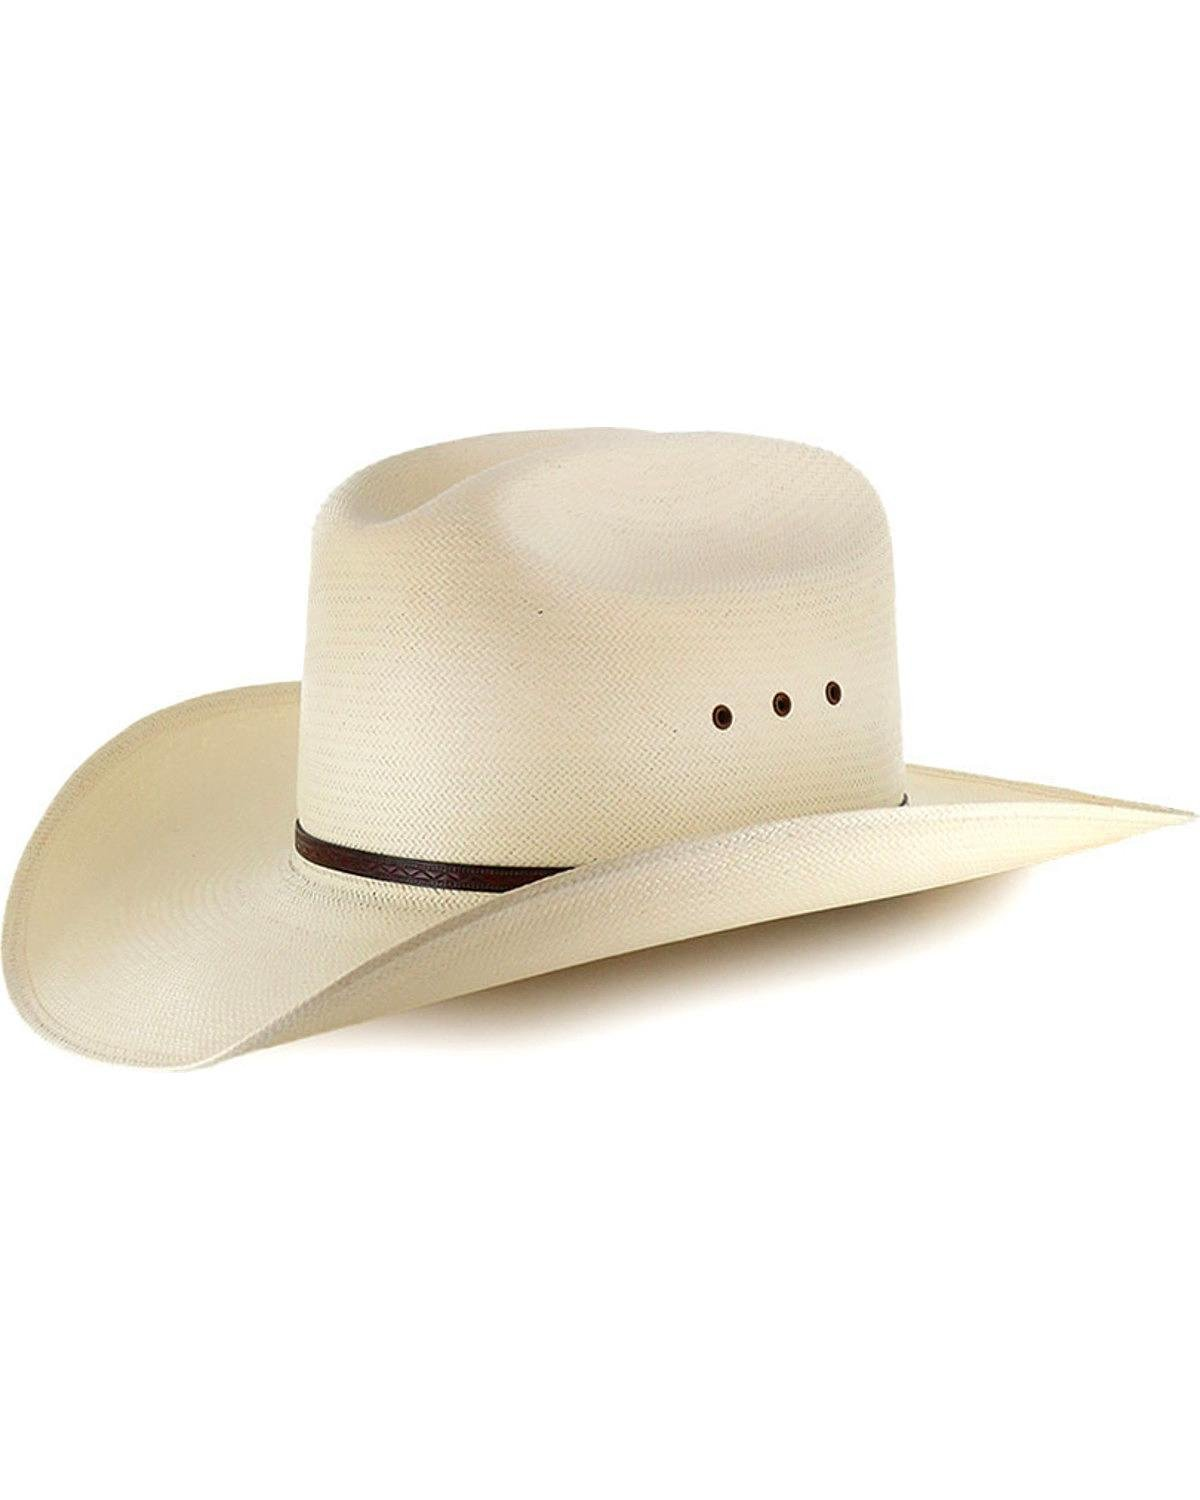 Moonshine Spirit Men's 8X River Bank Straw Hat Natural 7 1/2